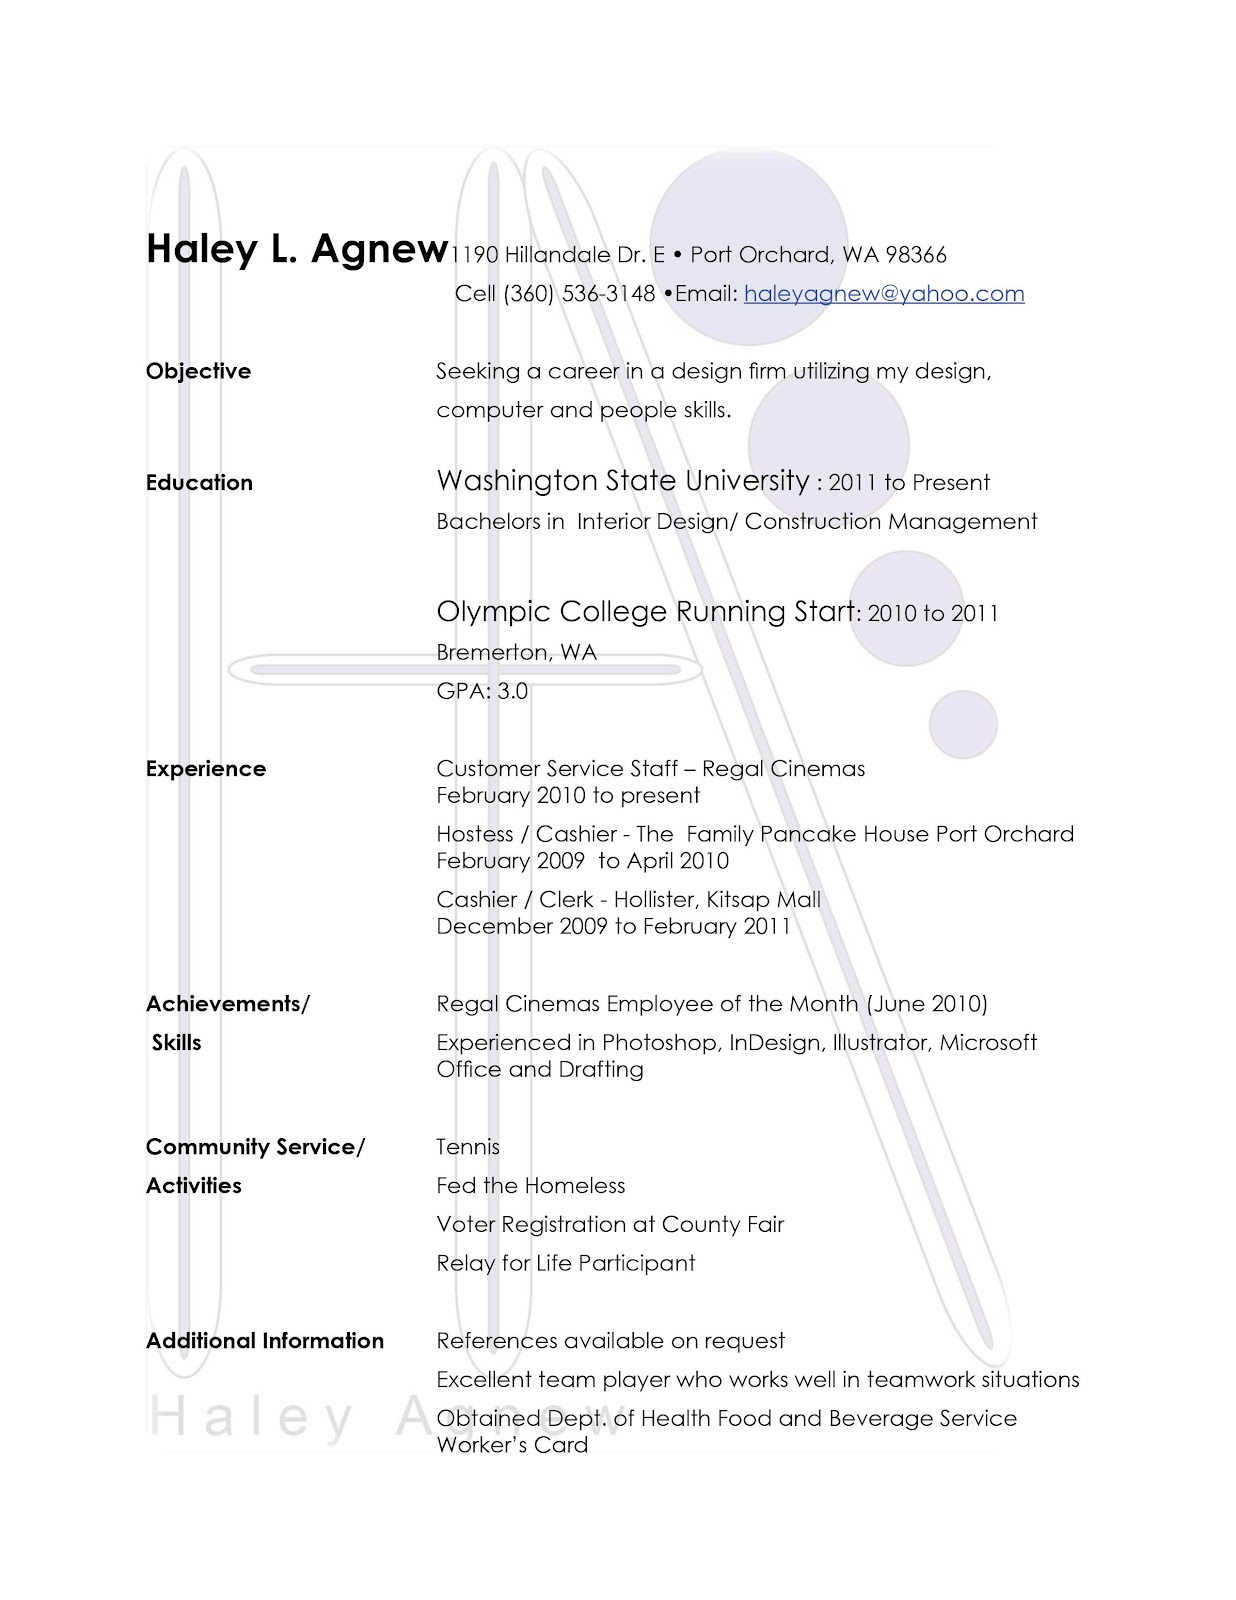 Haley Interior Design: Resume